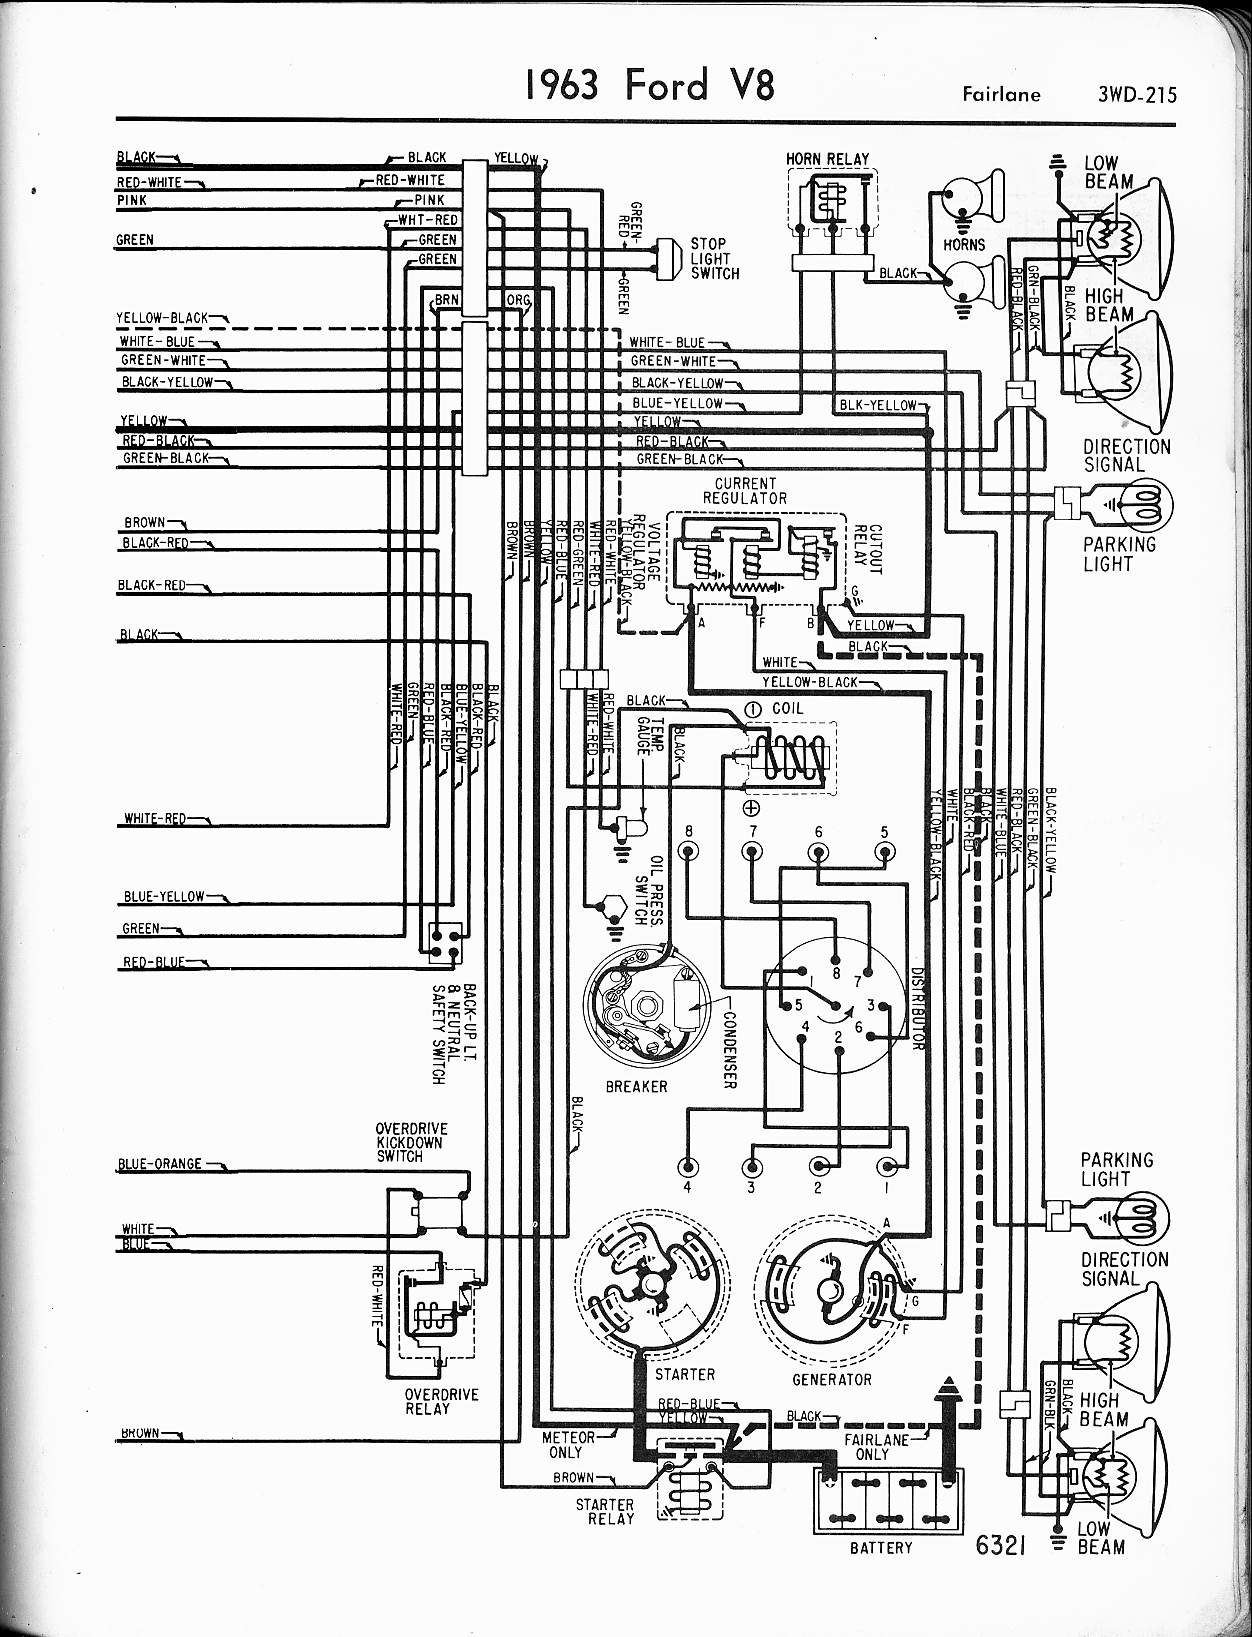 Falcon Starter Wiring Diagram | Wiring Diagram on